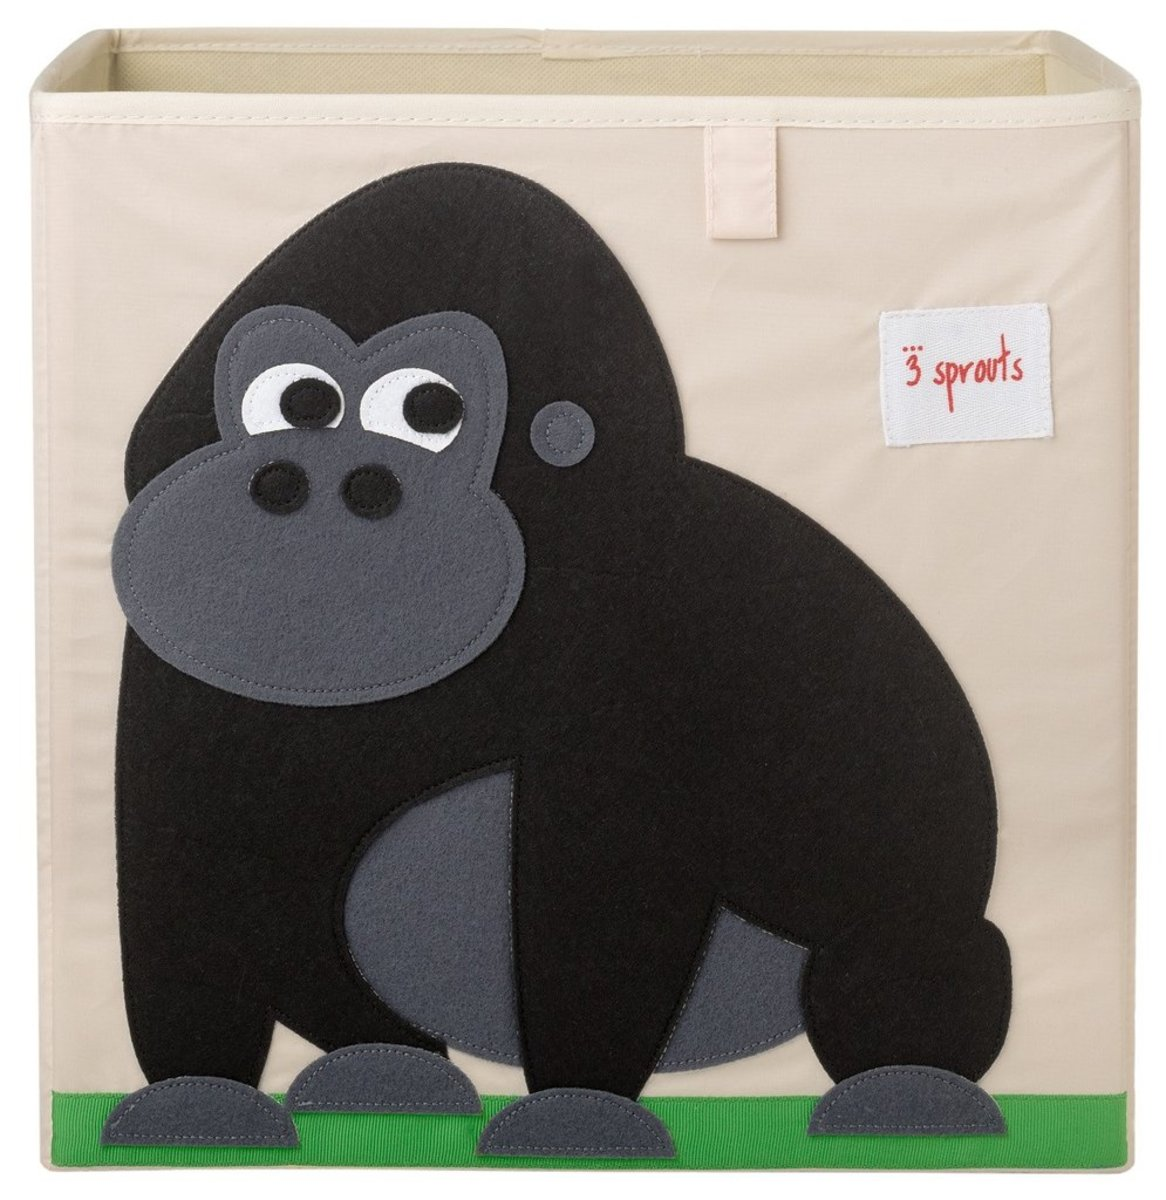 3 Sprouts Storage Box - Black Gorilla